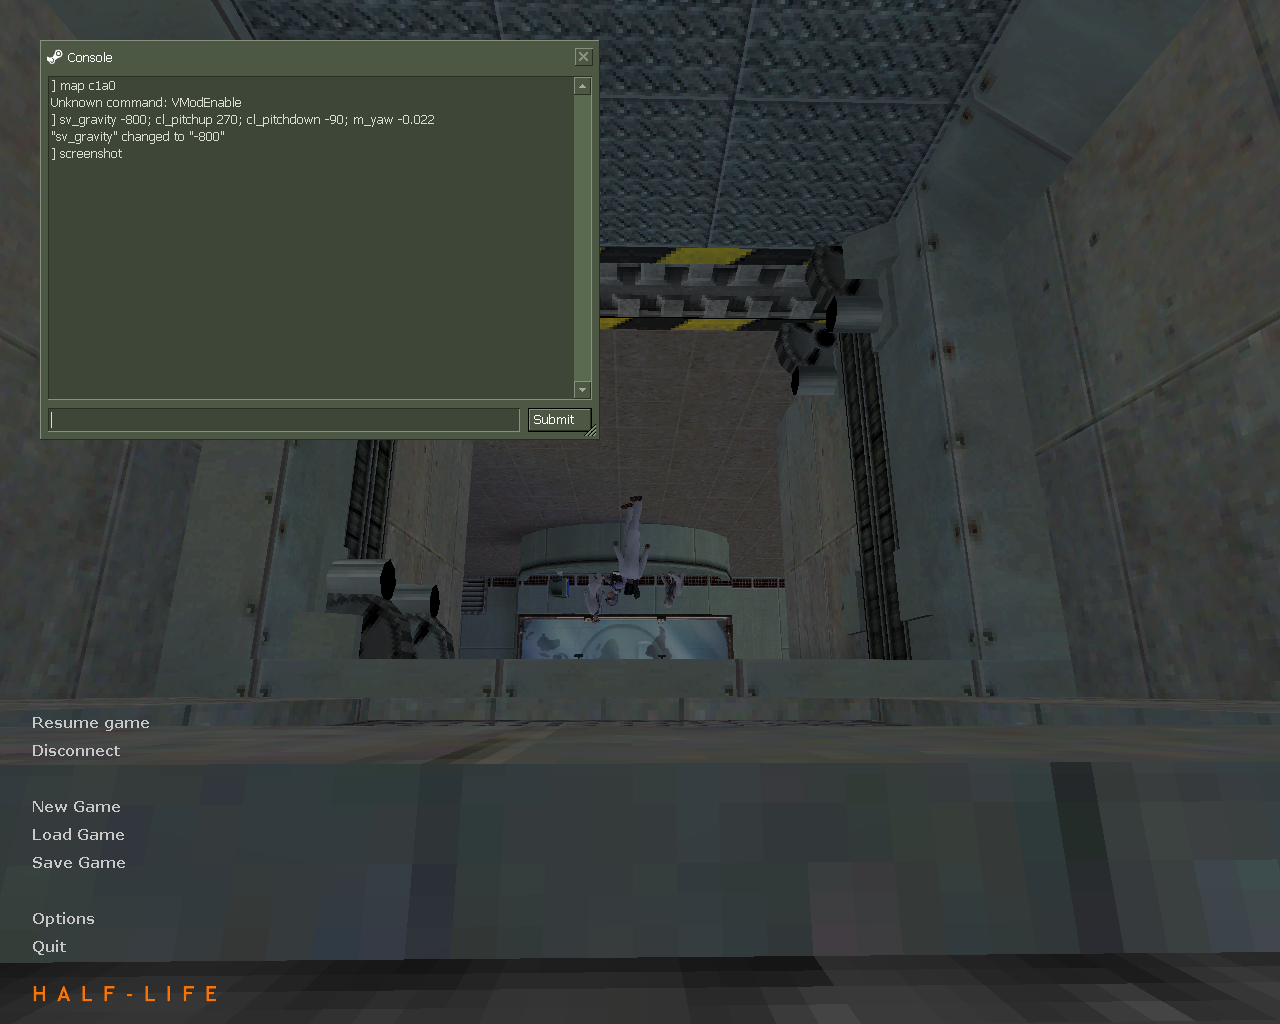 sv_gravity -800; cl_pitchup 270; cl_pitchdown -90; m_yaw -0.022 - Half-Life